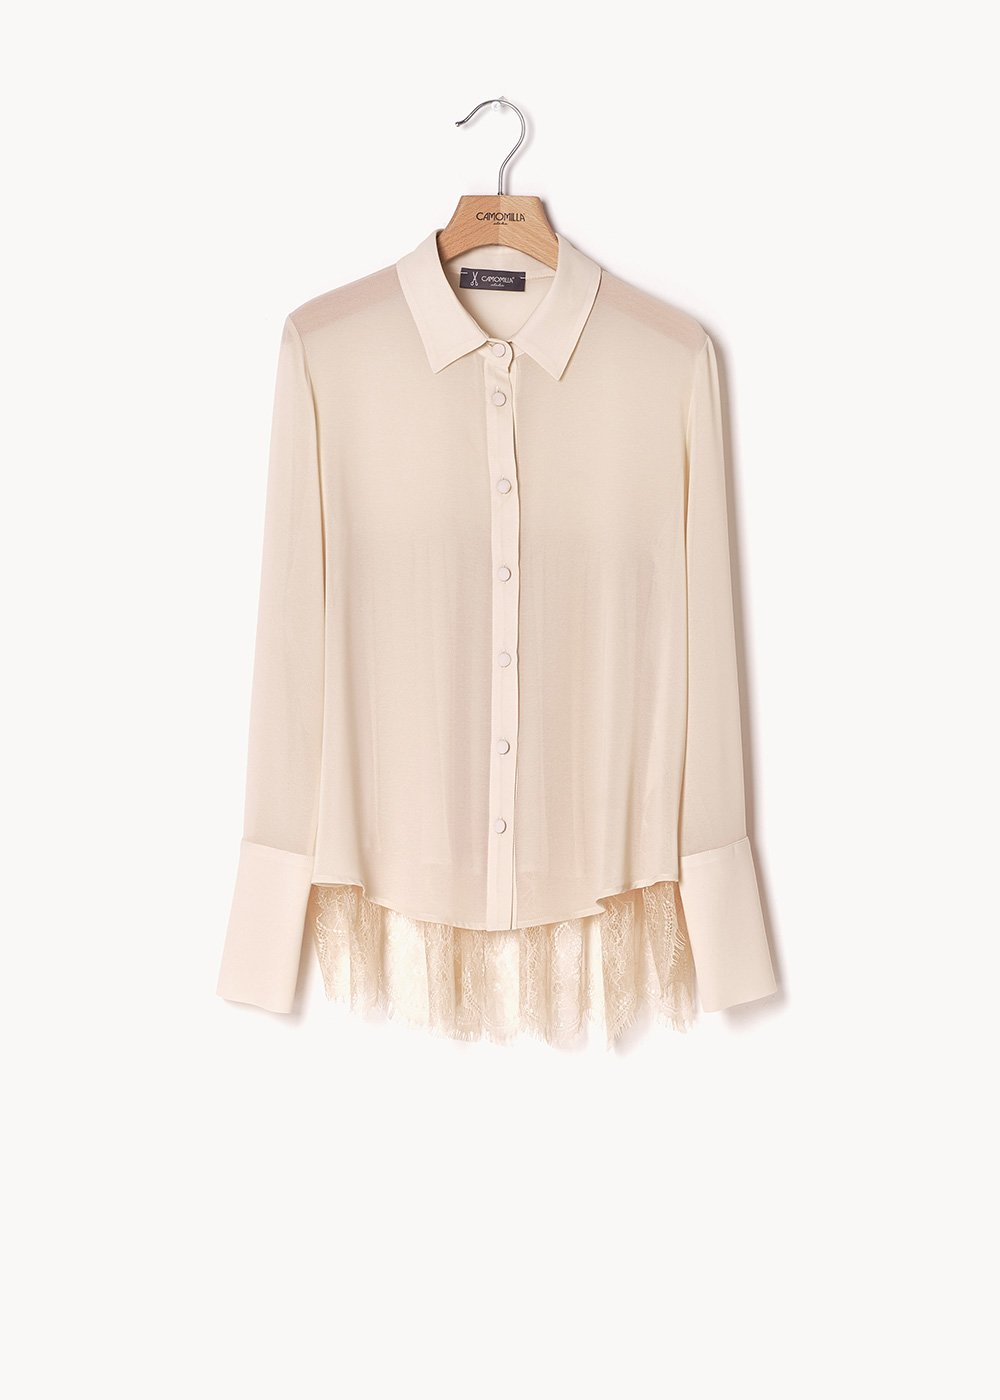 Clorinda shirt with lace on the back - Ginger - Woman